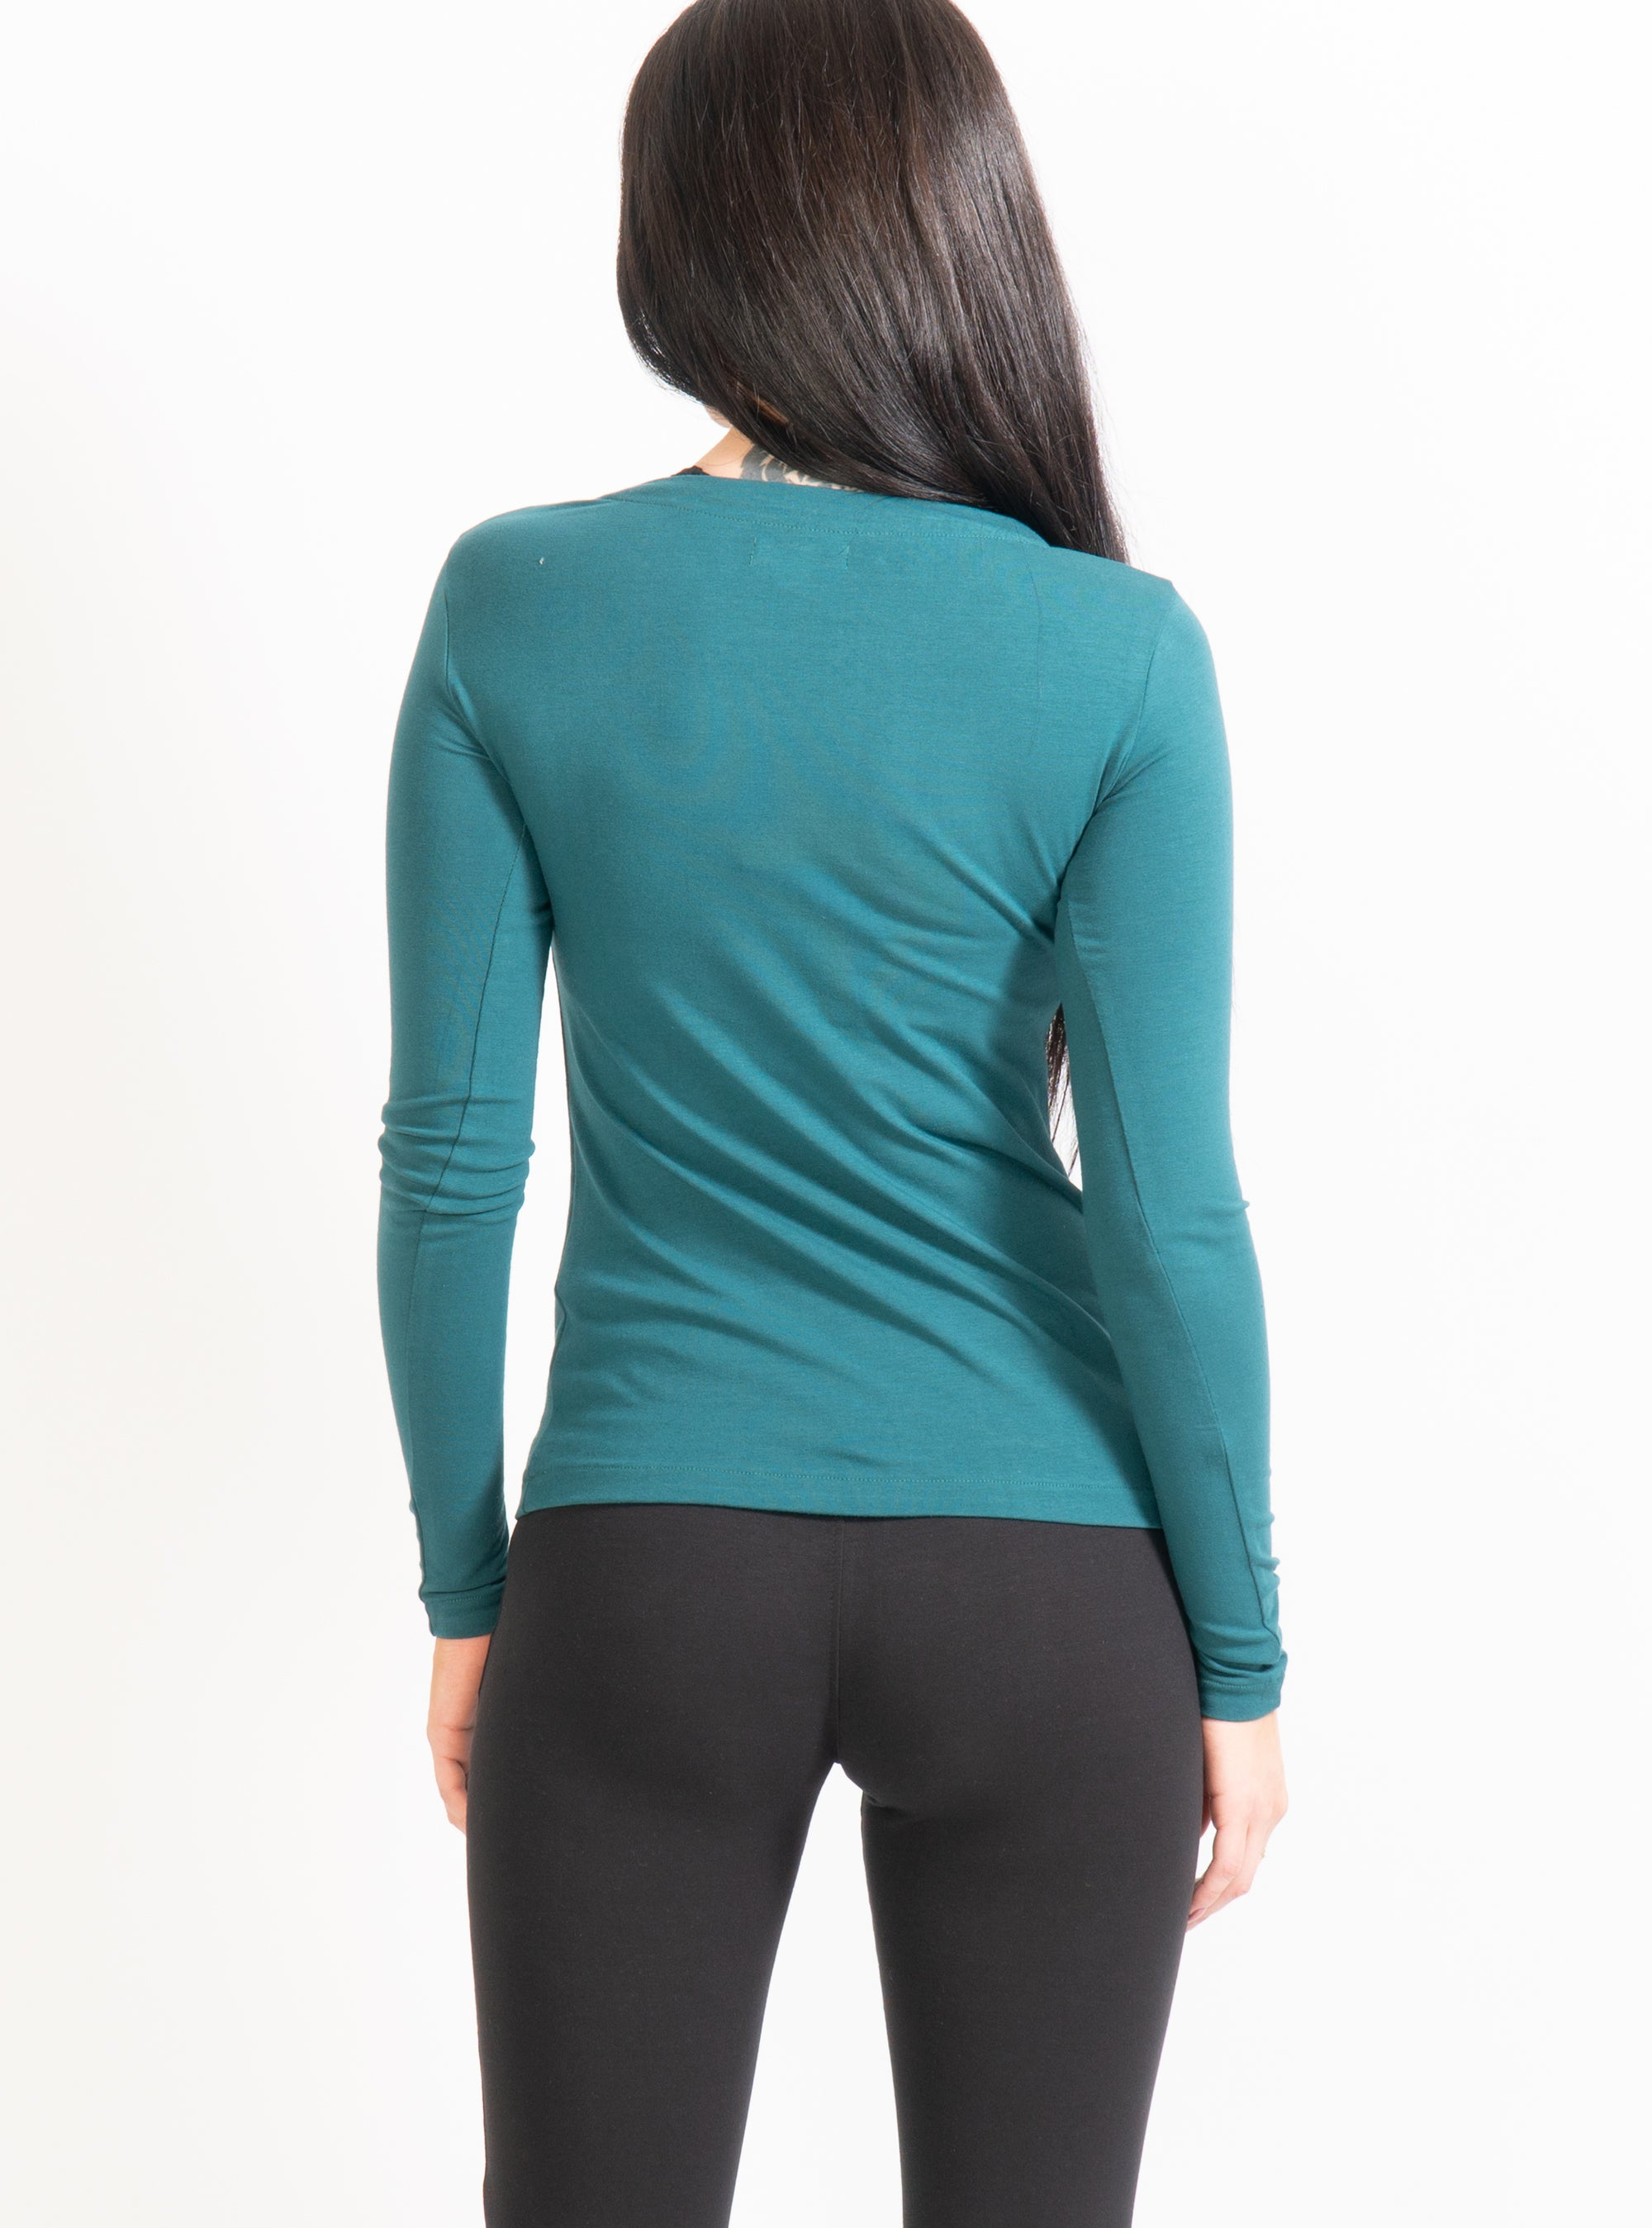 Unoa Teal Febe Long Sleeve T